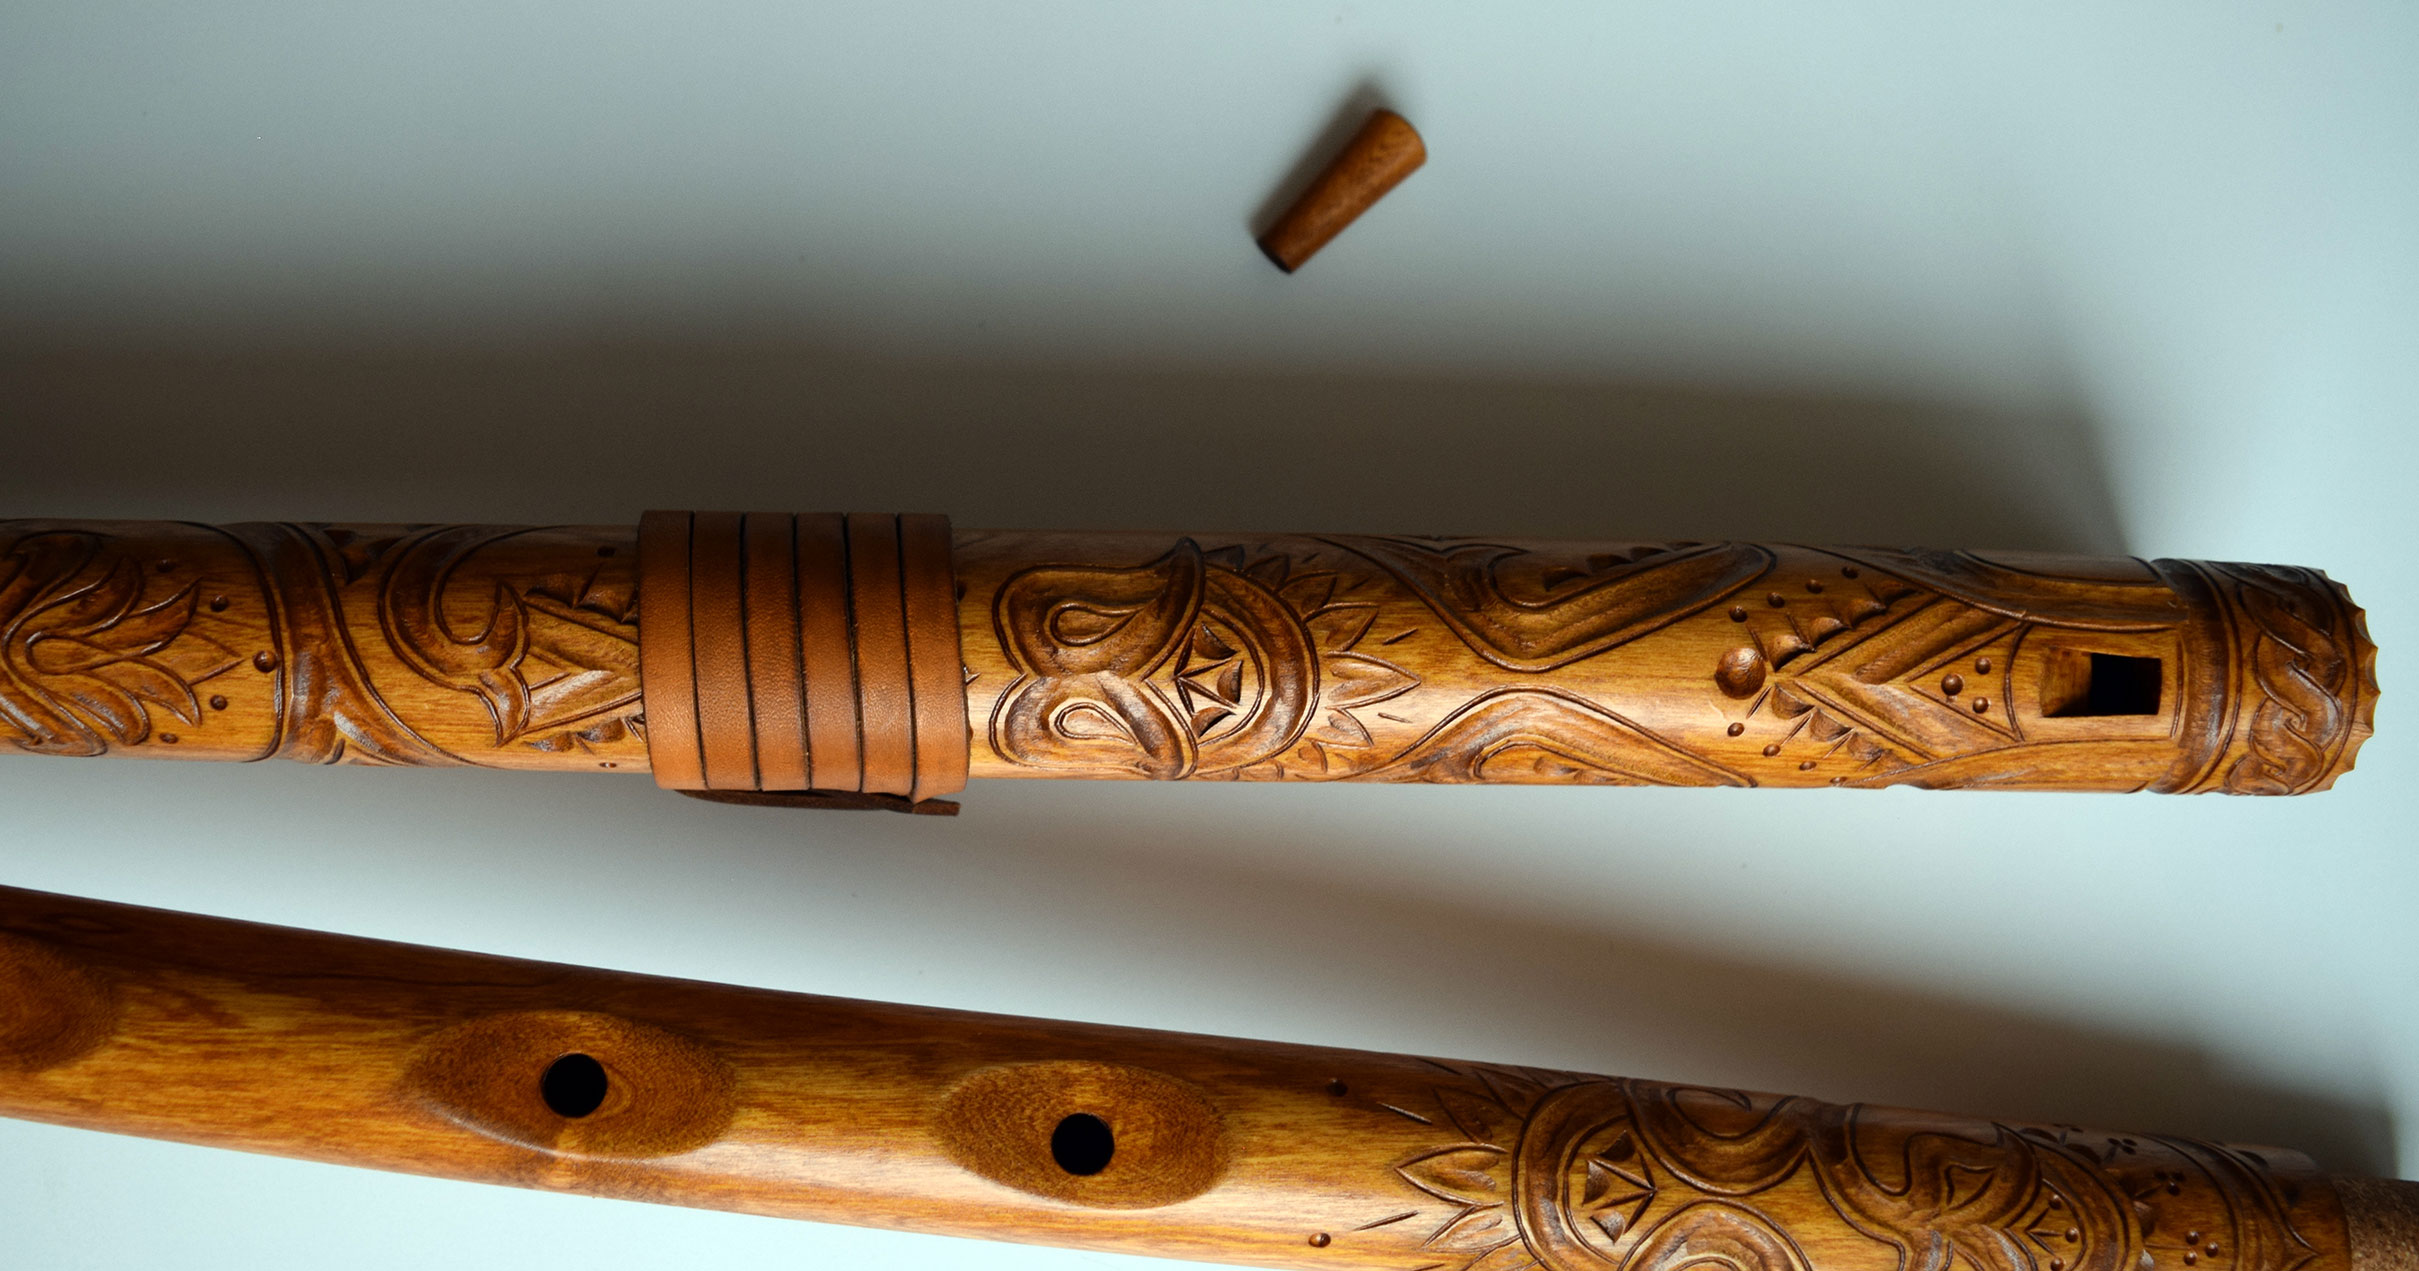 Hand-carved Fujara in C by Roman Kuchta